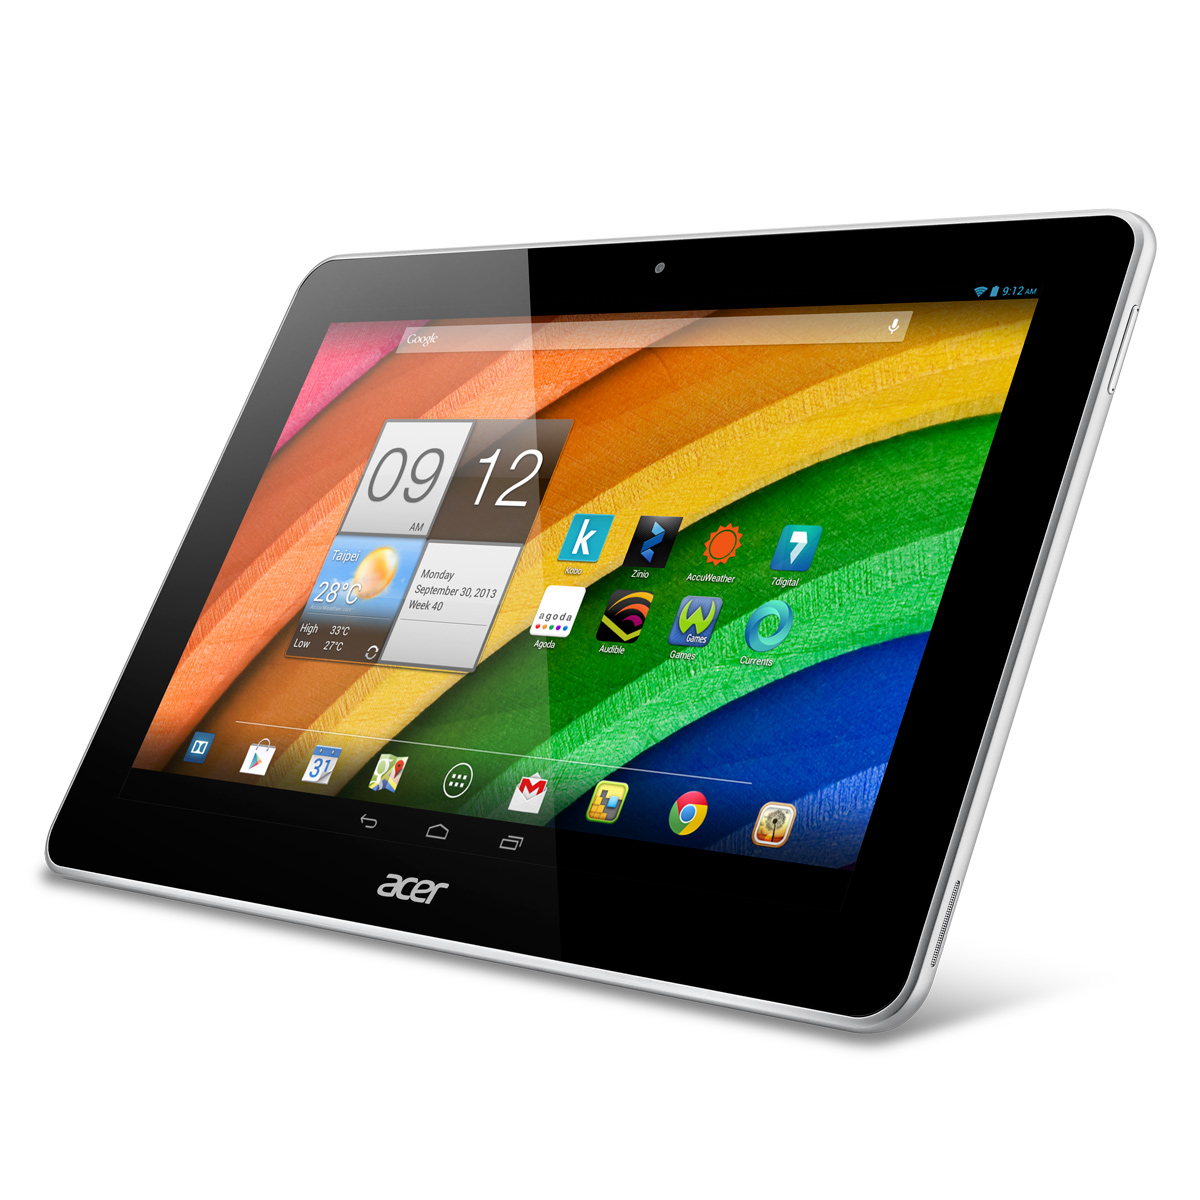 acer iconia a3 a10 nt achat vente tablette tactile sur. Black Bedroom Furniture Sets. Home Design Ideas